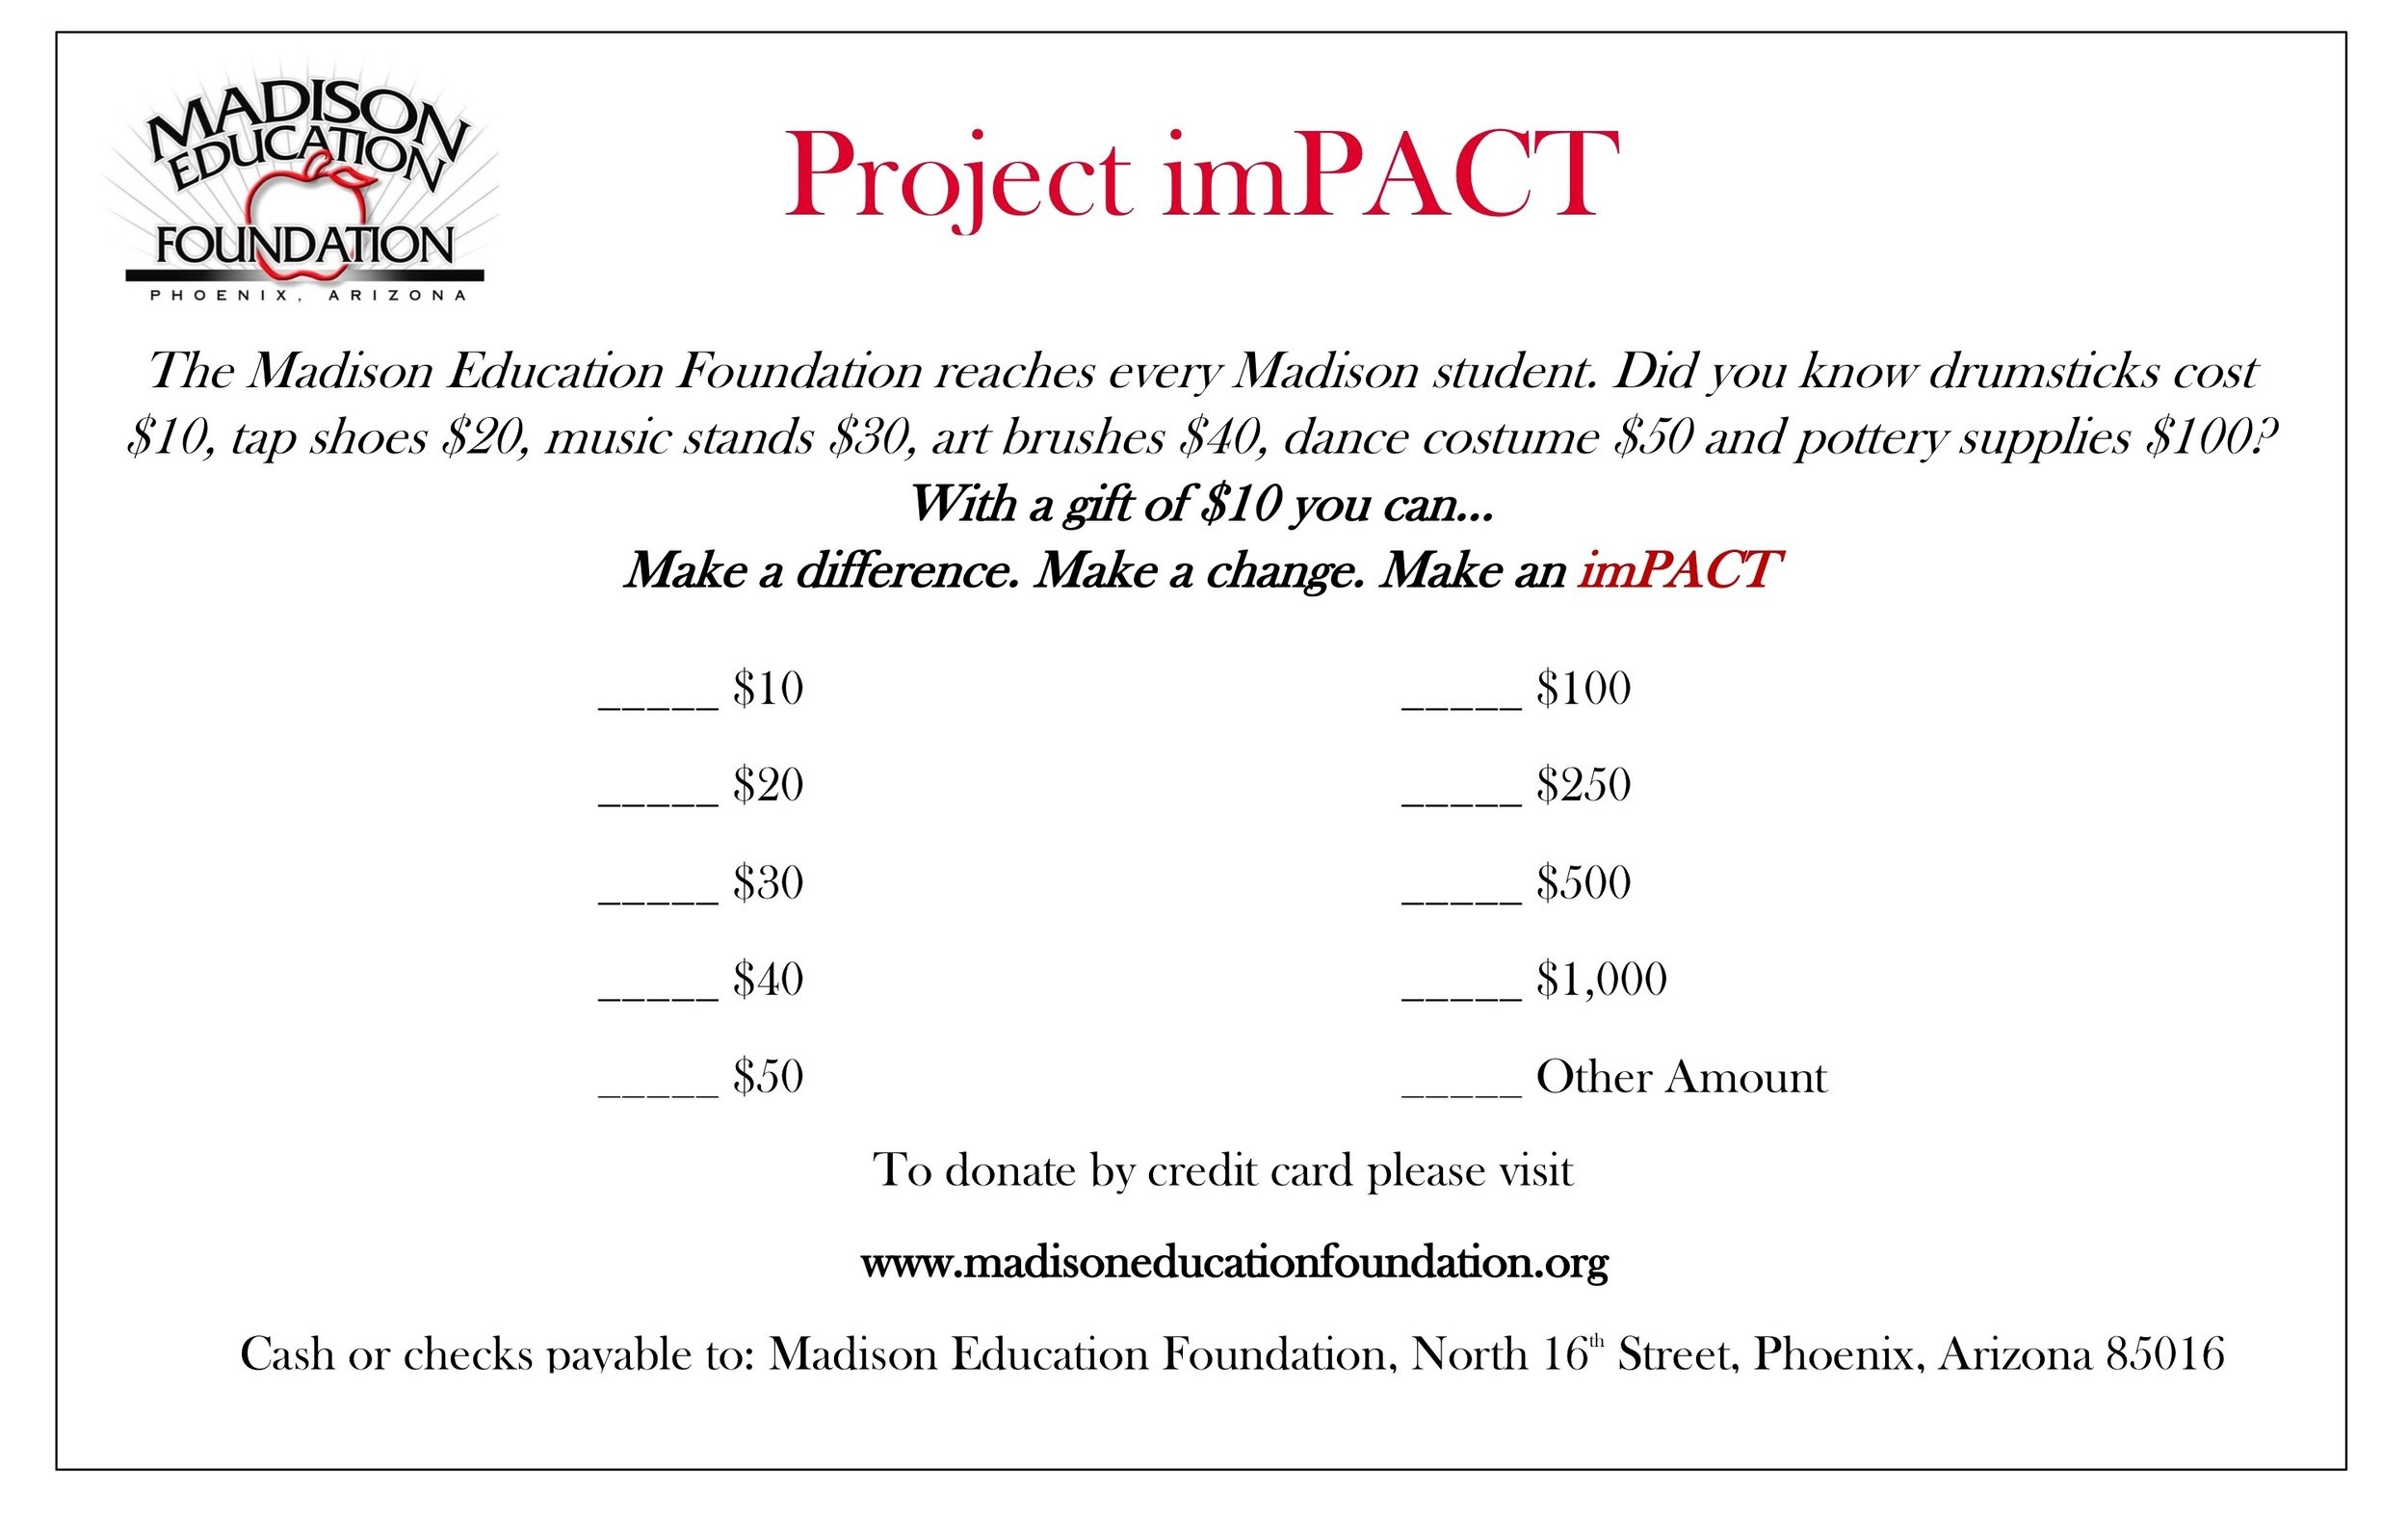 Project Impact - The Madison Education Foundation reaches every Madison student which is approximately 6,000 students or 12,000 hands! With a gift of $10 you can make a pact with the Foundation to imPACT ALL district students through the enhancement of arts education.DONATE NOW!